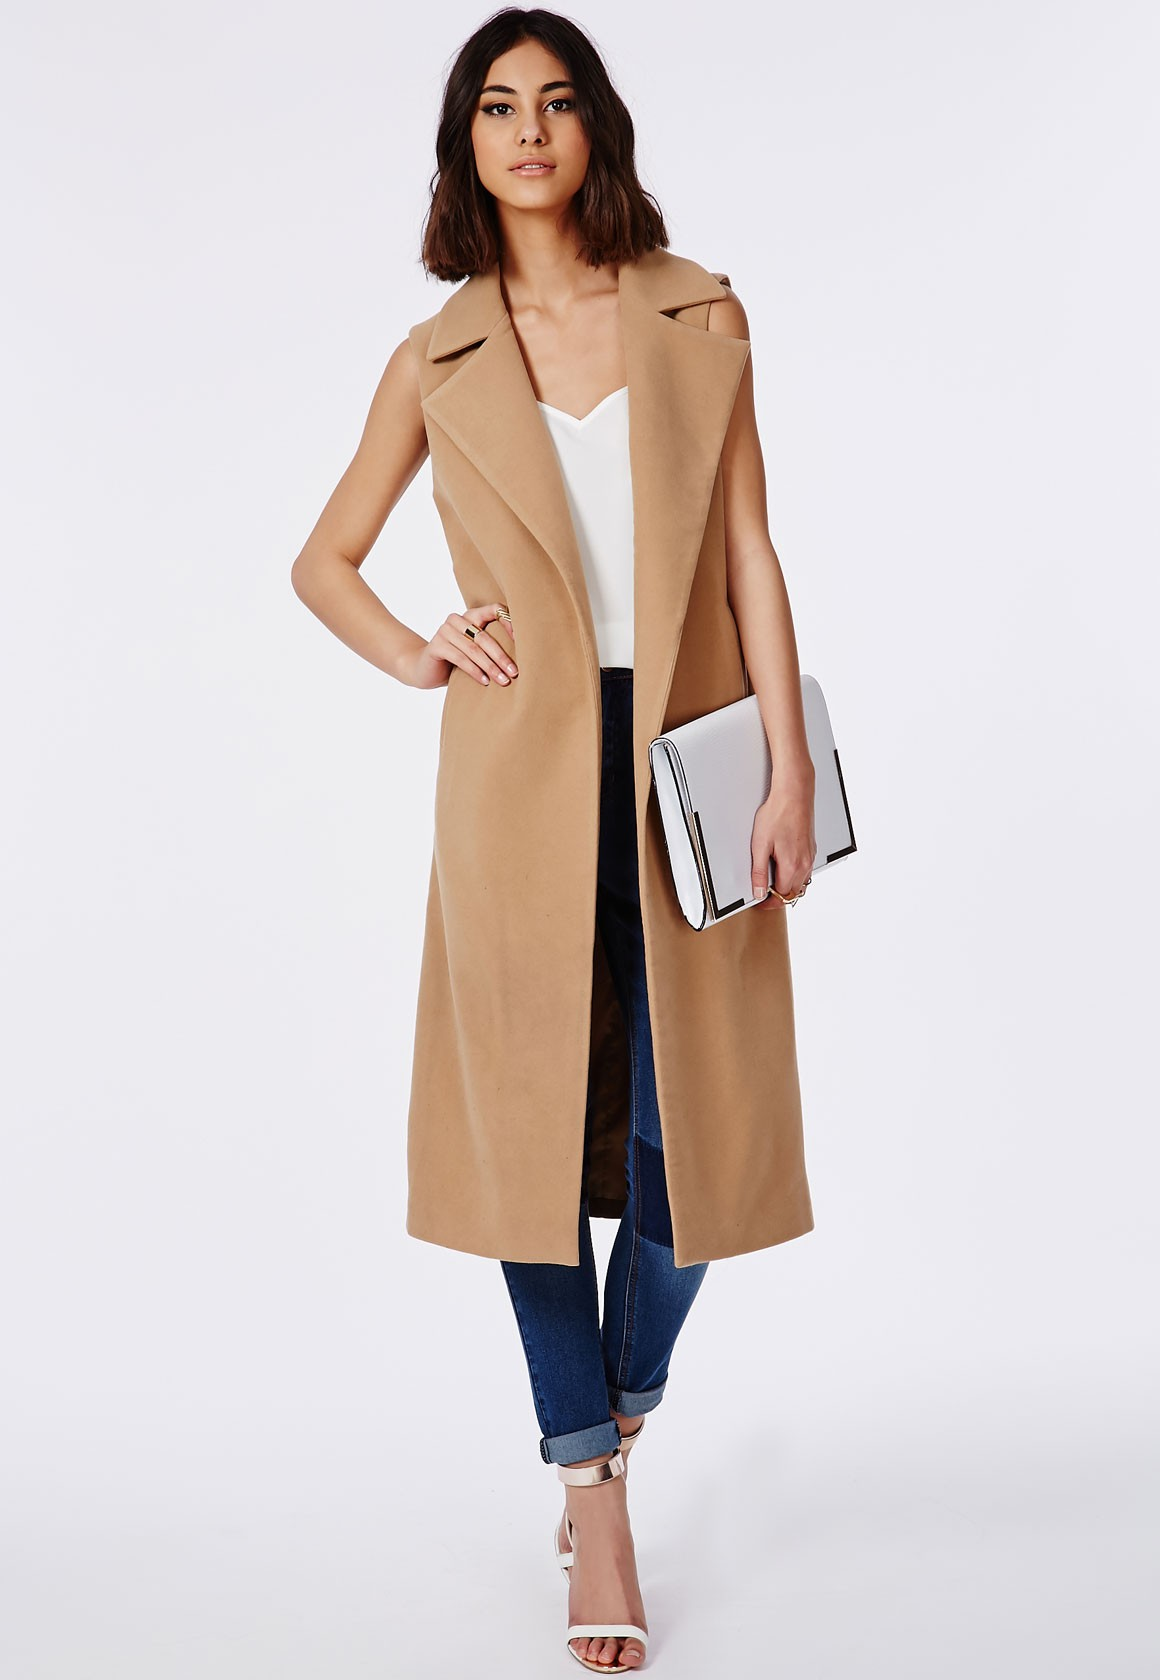 Shop for Women s Sleeveless Jacket at teraisompcz8d.ga Free Shipping. Free Returns. All the time.